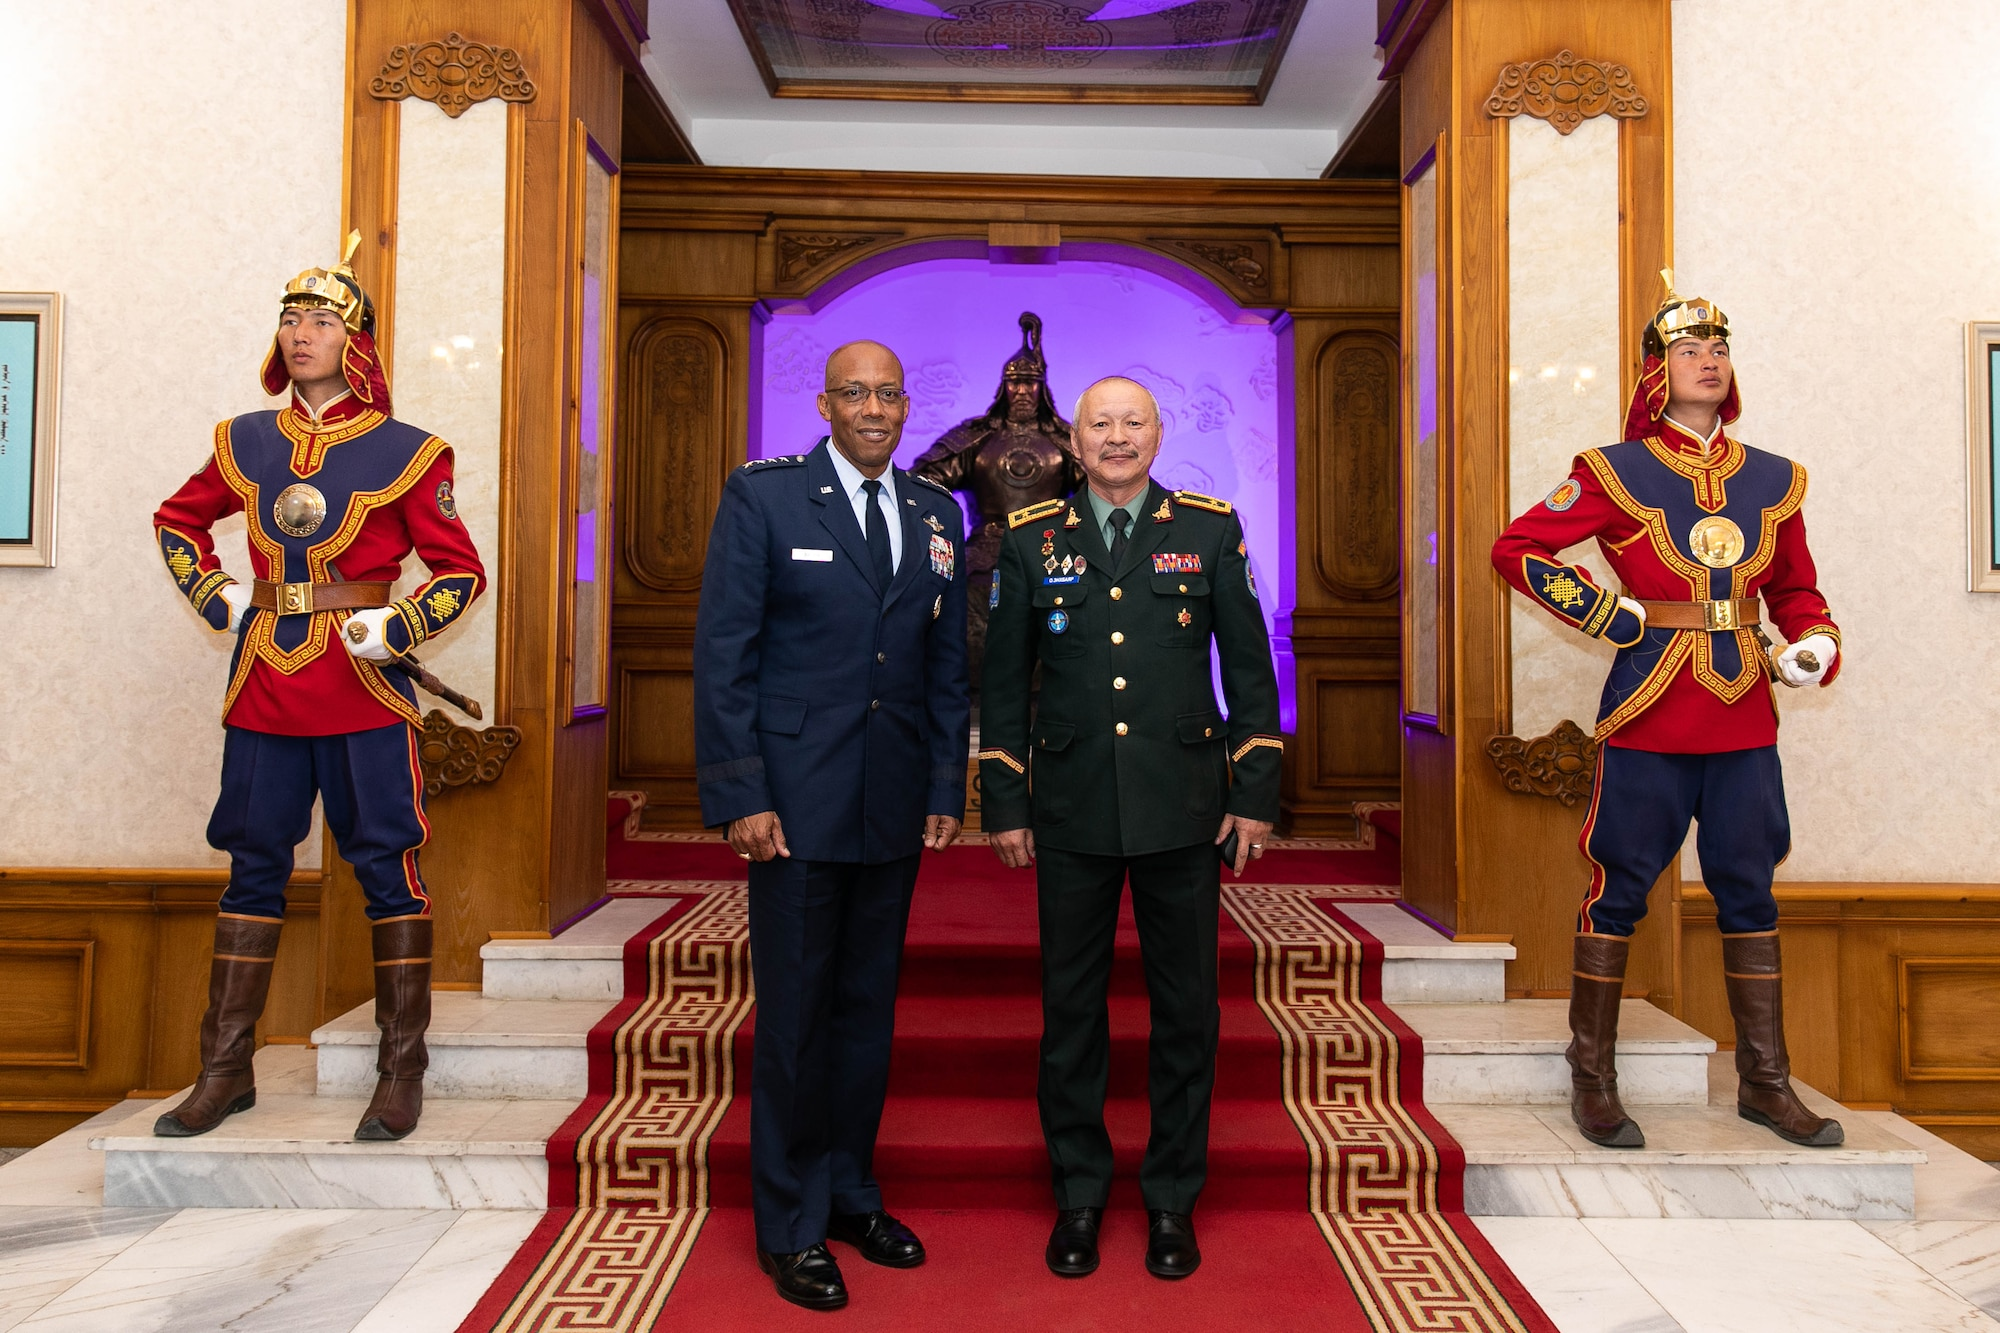 Gen. CQ Brown, Jr., Pacific Air Forces commander, and Brig. Gen. Enkhbayar Ochir, commander of Mongolian Air Force Command (MAFC), pose for a photo inside the Ministry of Defense in Ulaanbaatar, Mongolia, May 14.  In his first visit to the country, Brown met with senior leaders from Mongolia and the United States to seek opportunities to enhance cooperation and partnership with the Mongolian Air Force Command. (photo courtesy US Embassy)